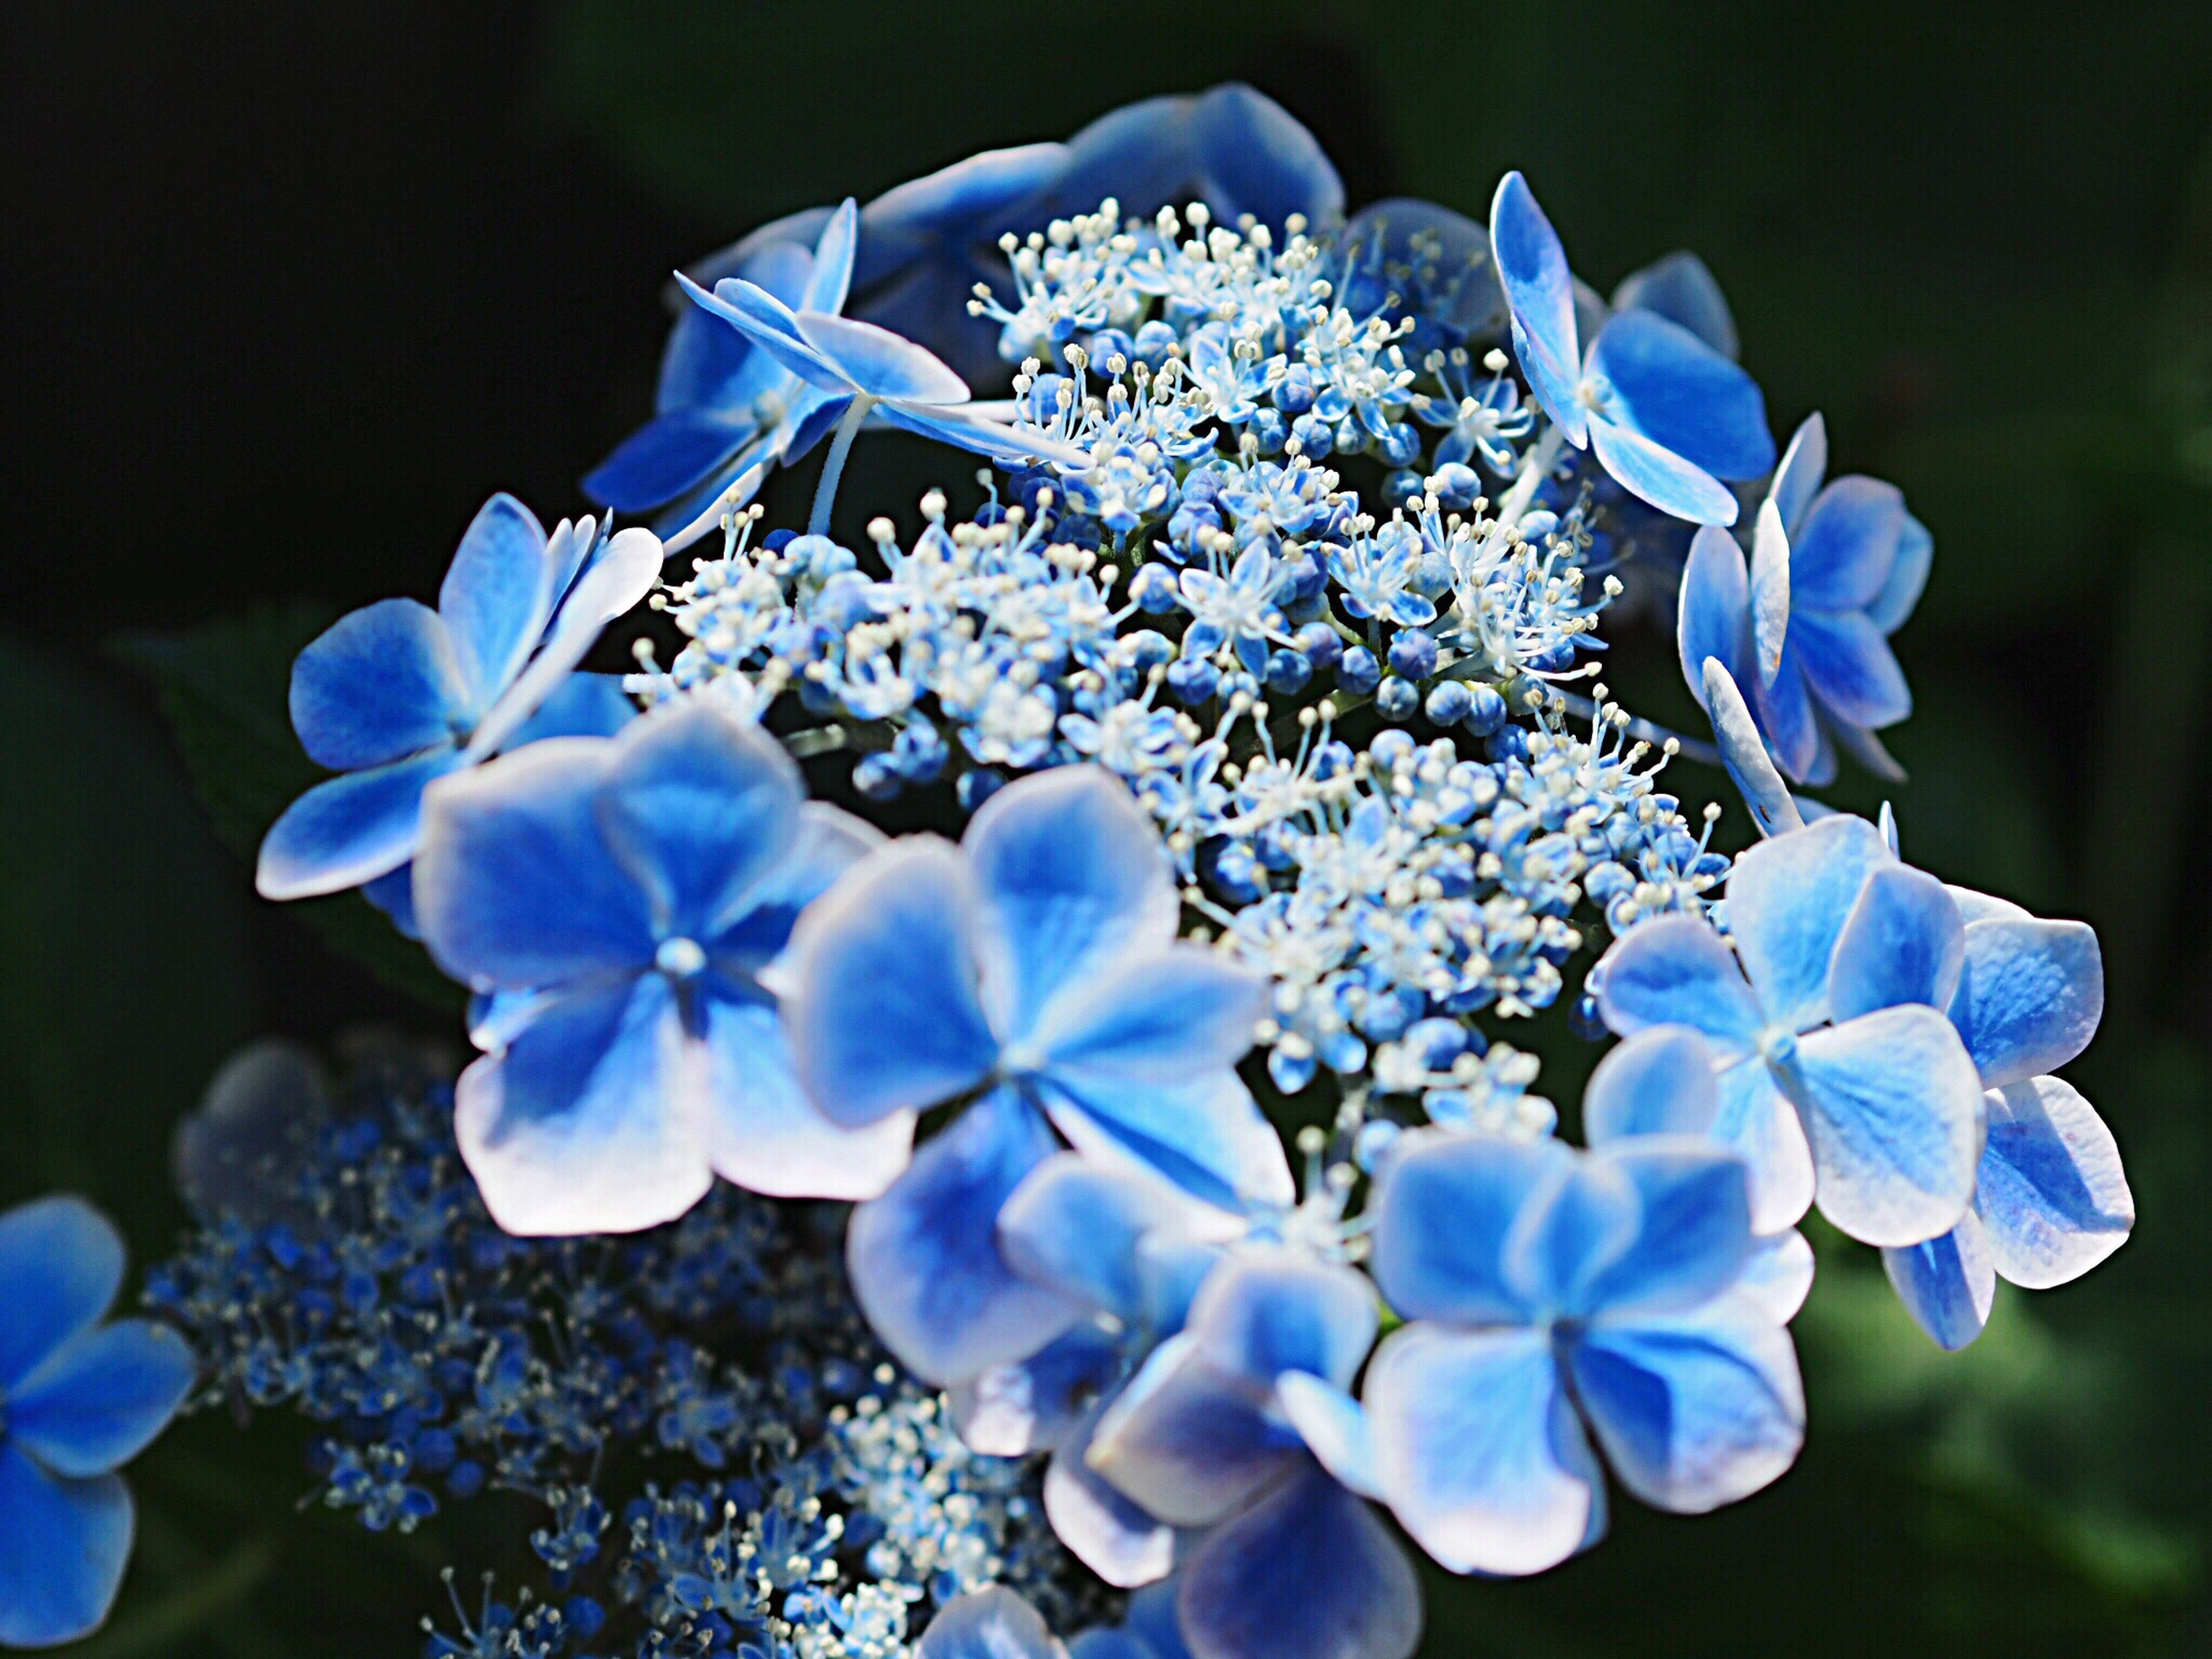 flower, beauty in nature, petal, nature, fragility, growth, blooming, flower head, blue, freshness, hydrangea, no people, day, plant, outdoors, close-up